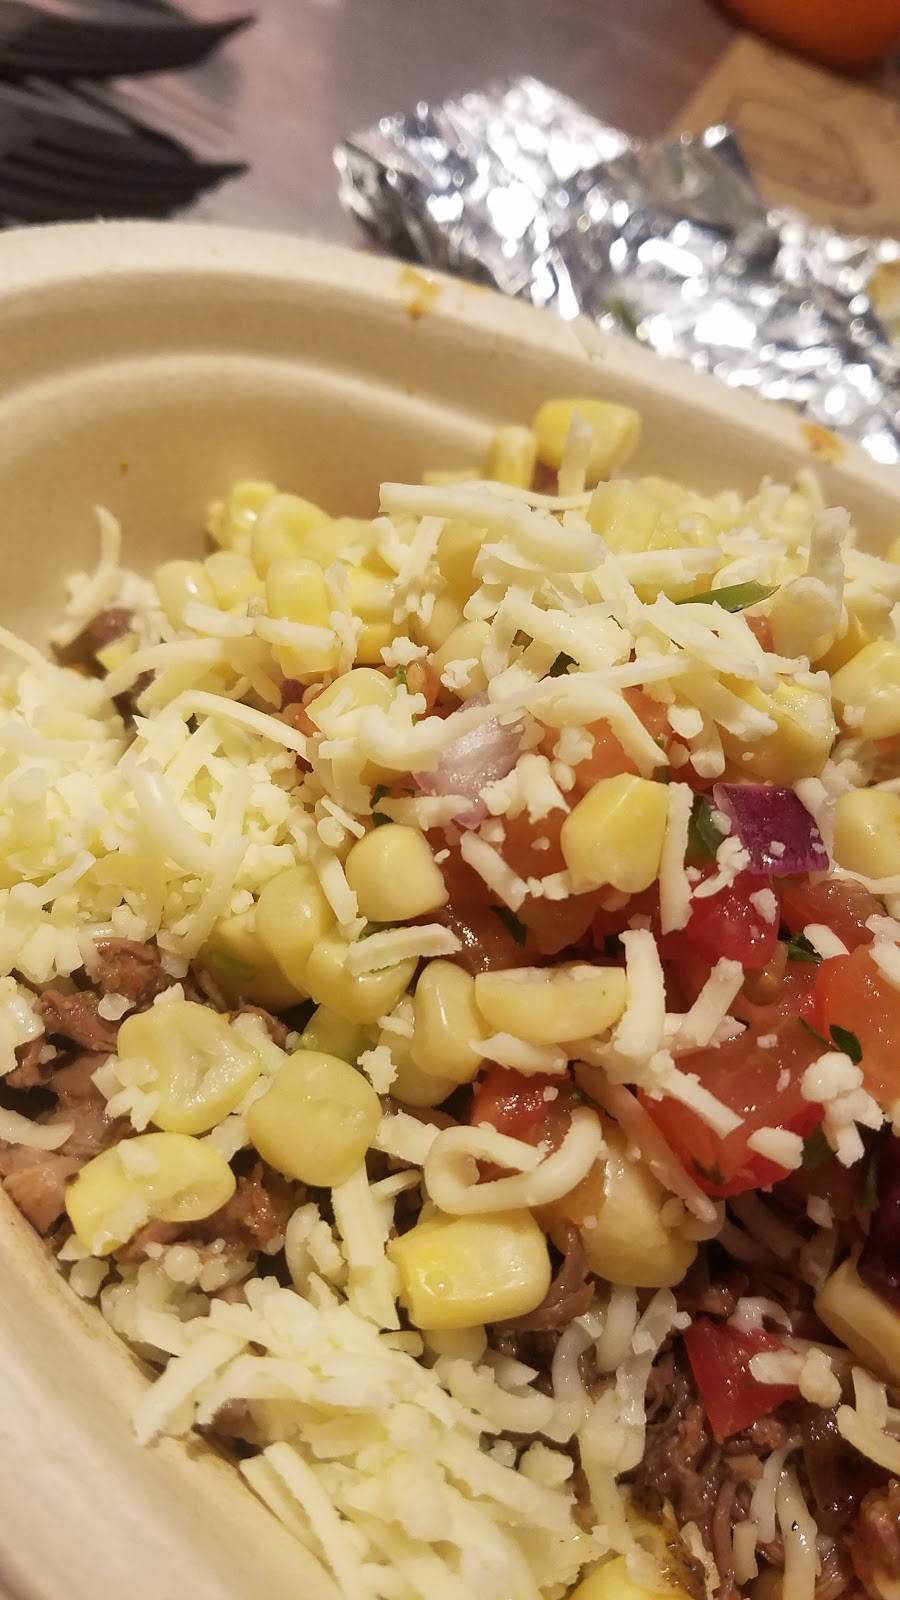 Chipotle Mexican Grill | restaurant | 7600 Cypress Creek Pkwy, Houston, TX 77070, USA | 8322372449 OR +1 832-237-2449